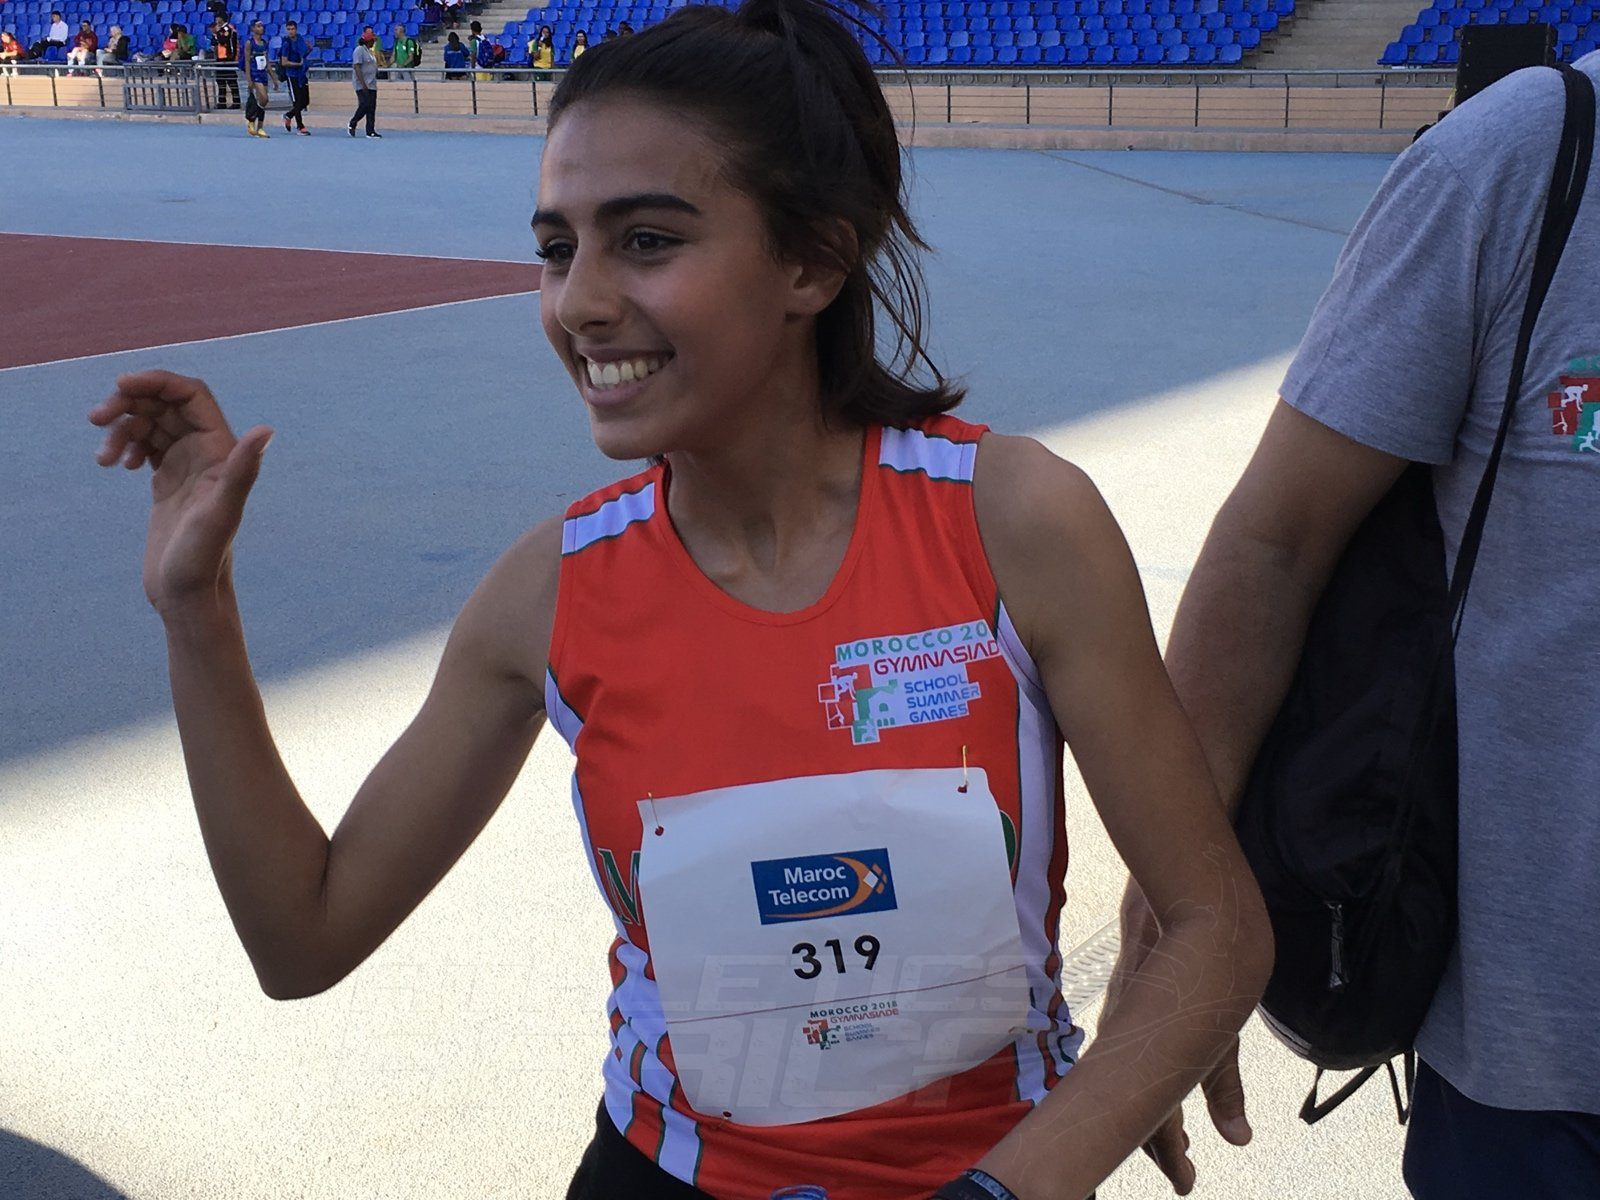 Morocco's Yassmine Bidkane all smiles after winning the Girls 1500m at the Gymnasiade 2018 in Marrakech / Photo Credit: Yomi Omogbeja